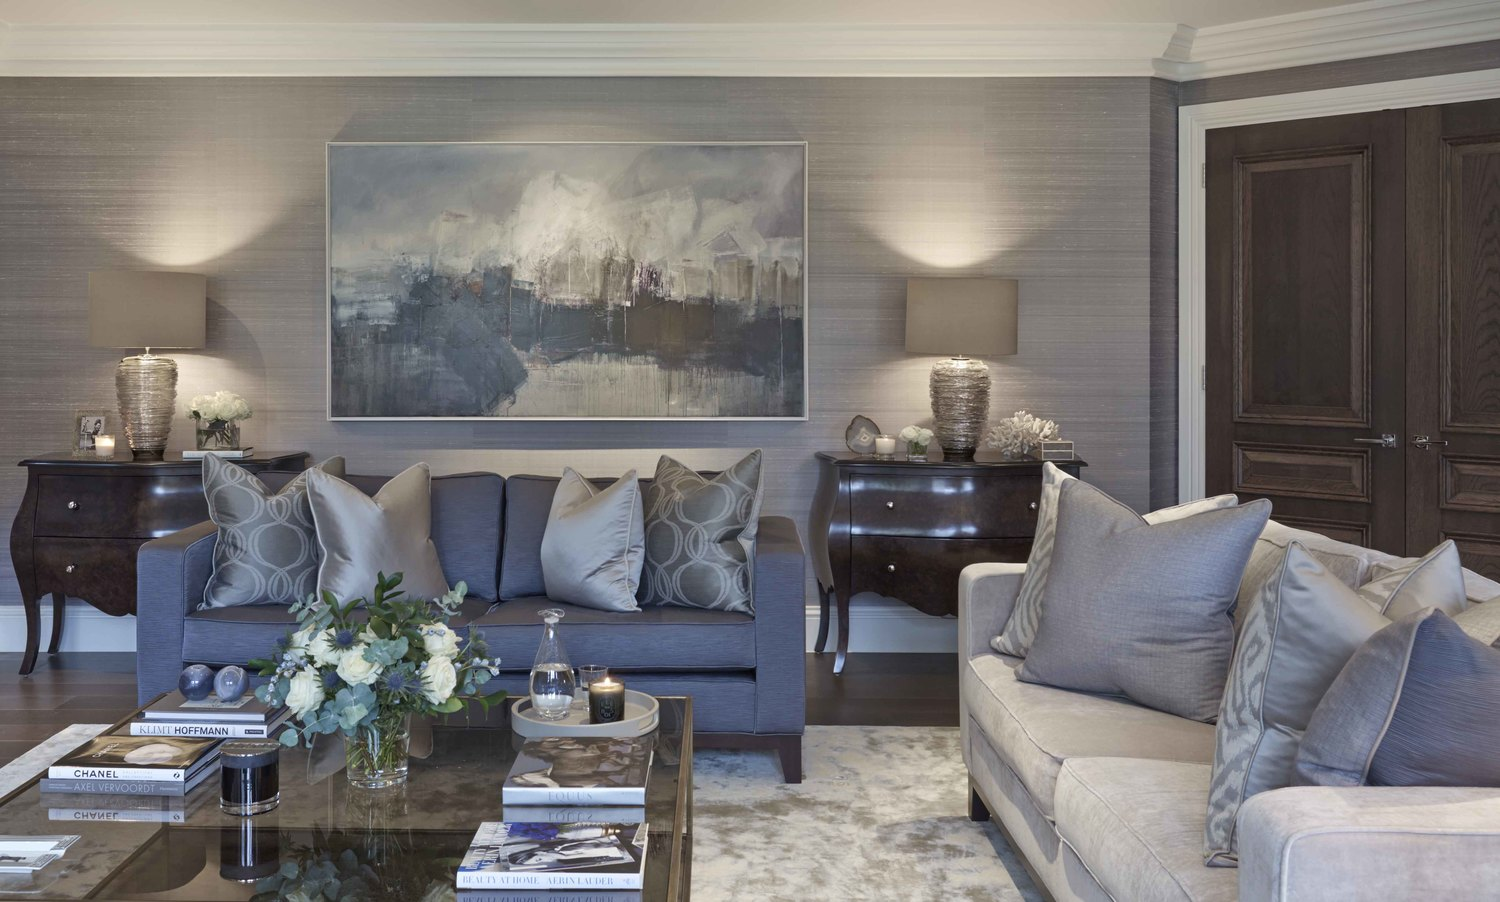 Sophie paterson interiors for Designa interiors